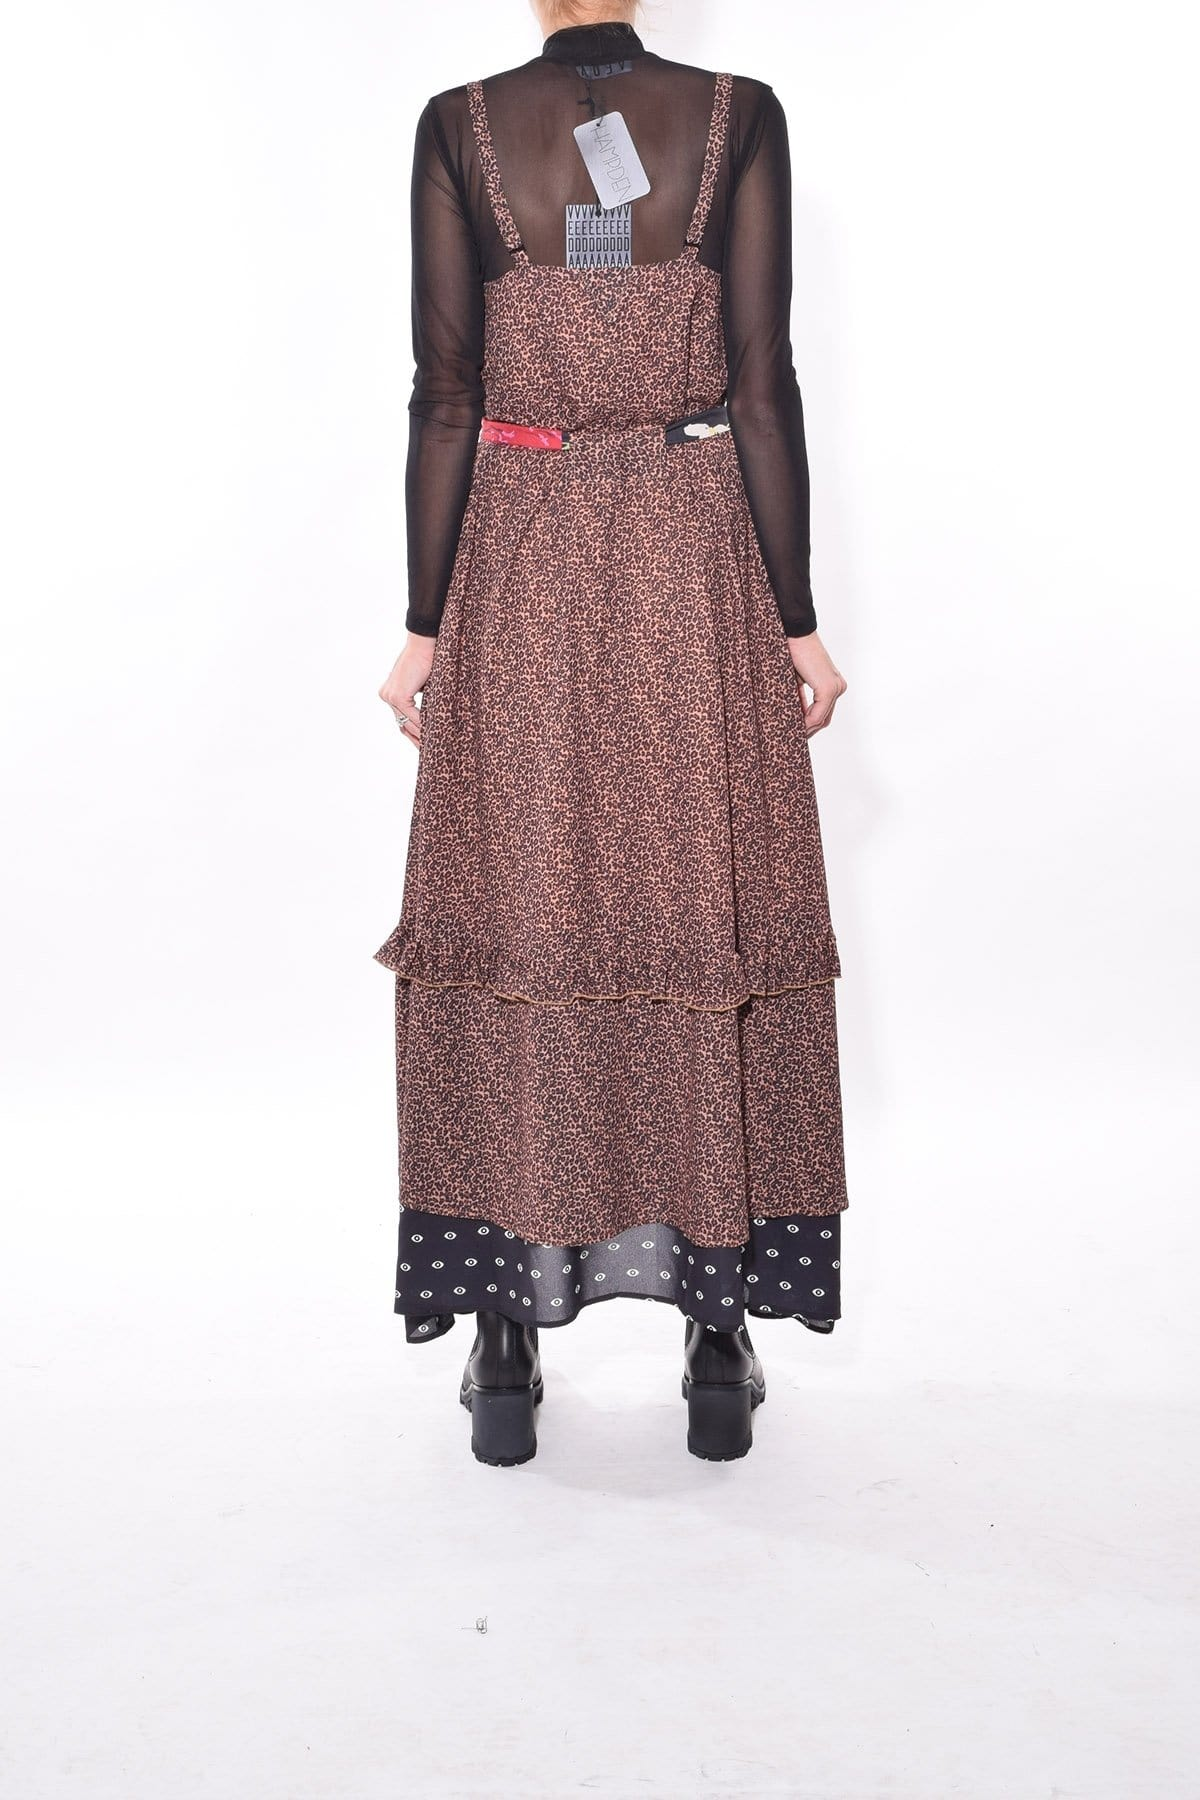 Floor Length Turtleneck Sheer Mesh General Print Fall Dress